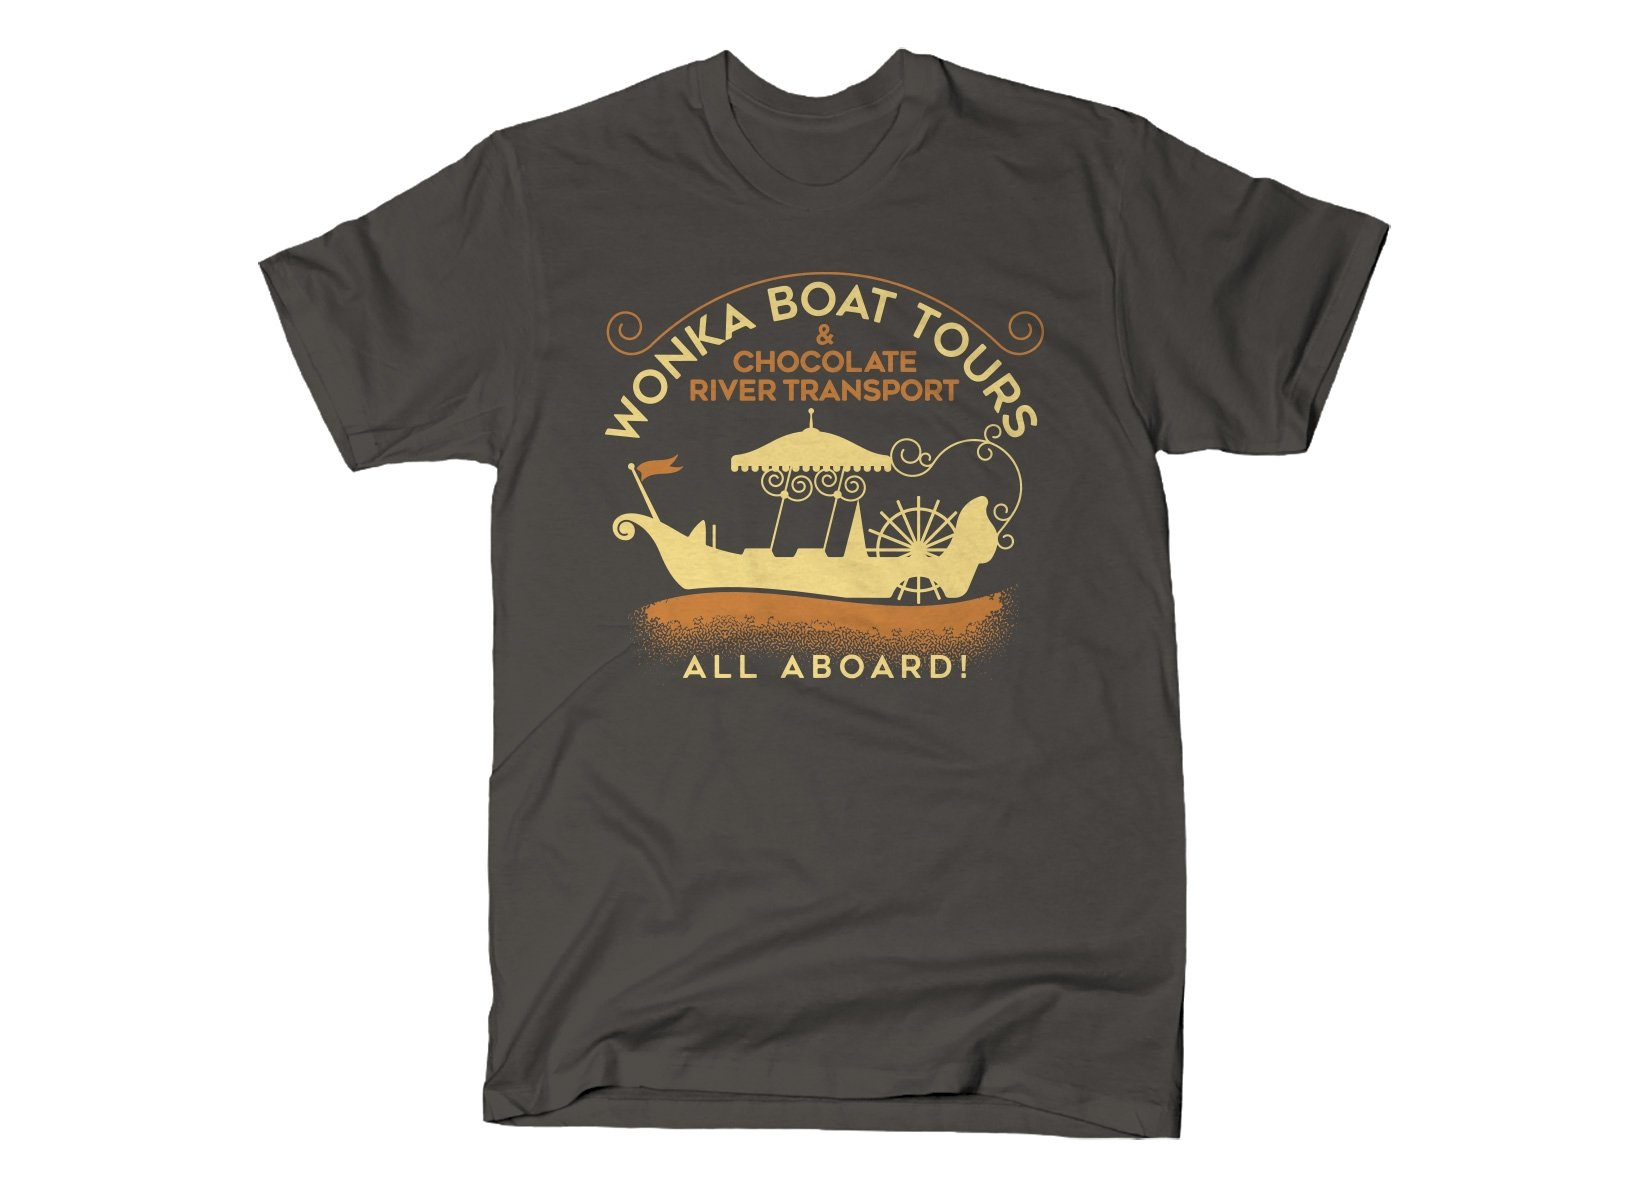 Wonka Boat Tours on Mens T-Shirt